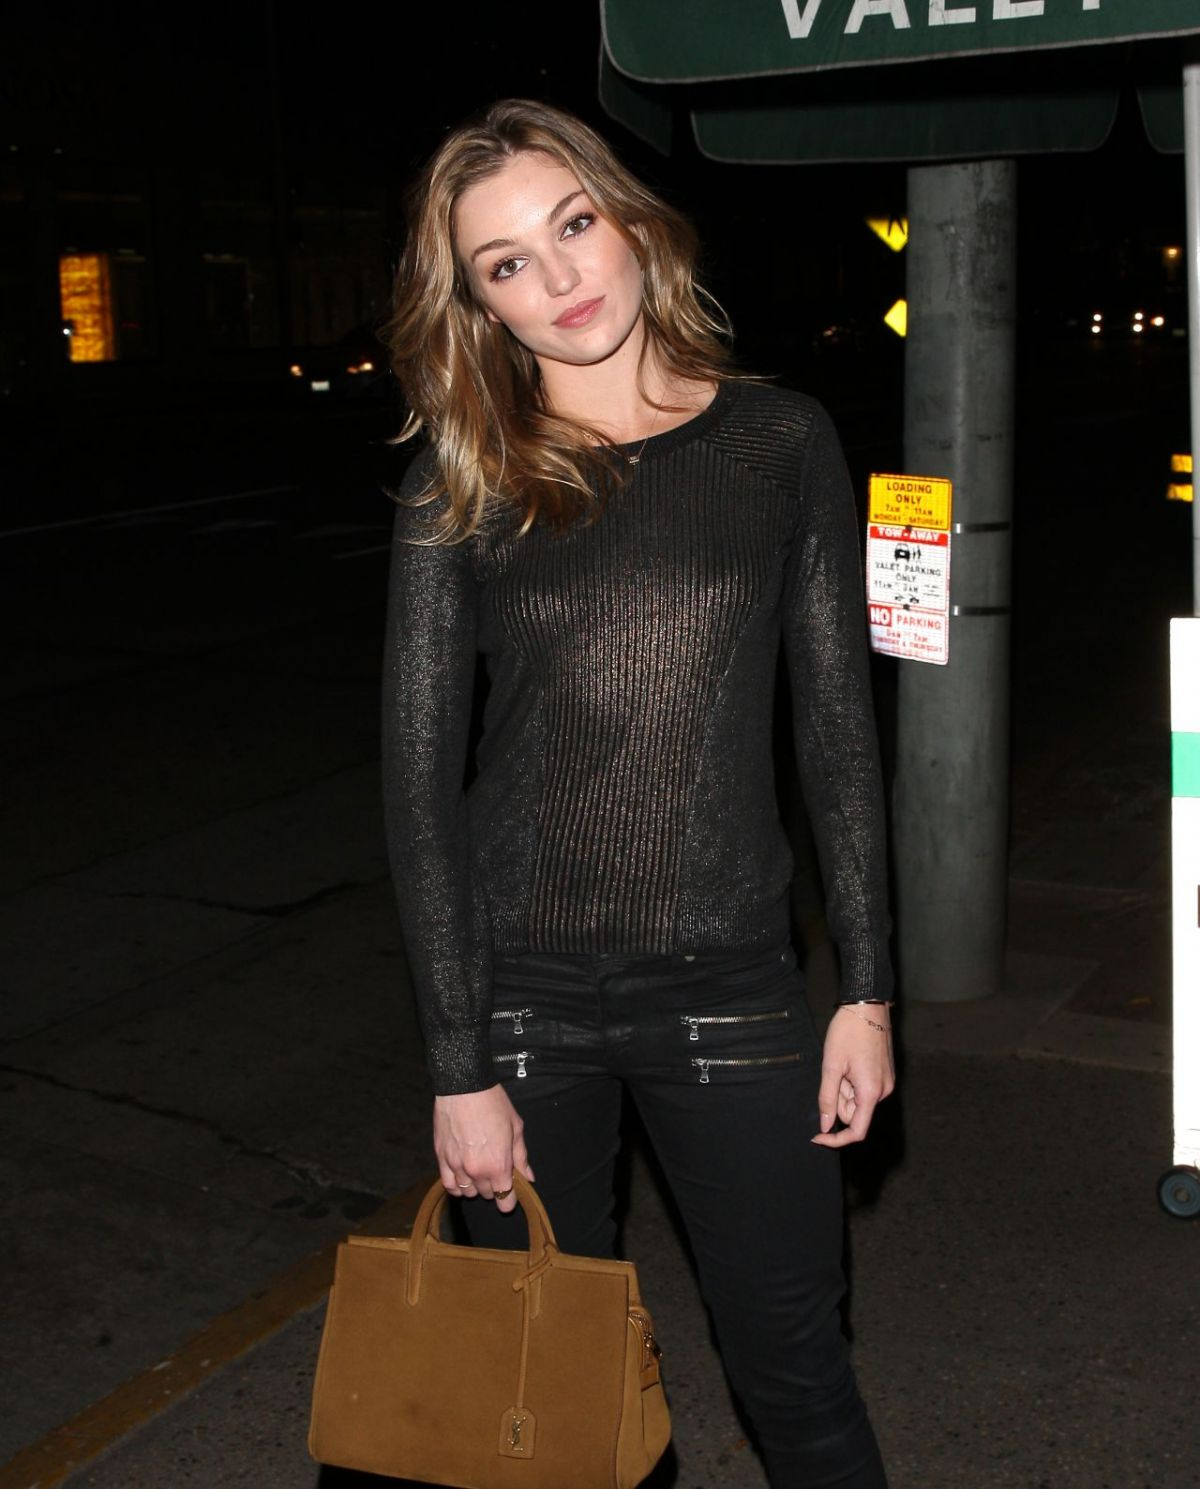 LILI SIMMONS at Madeo Restaurant in West Hollywood 03/09/2017